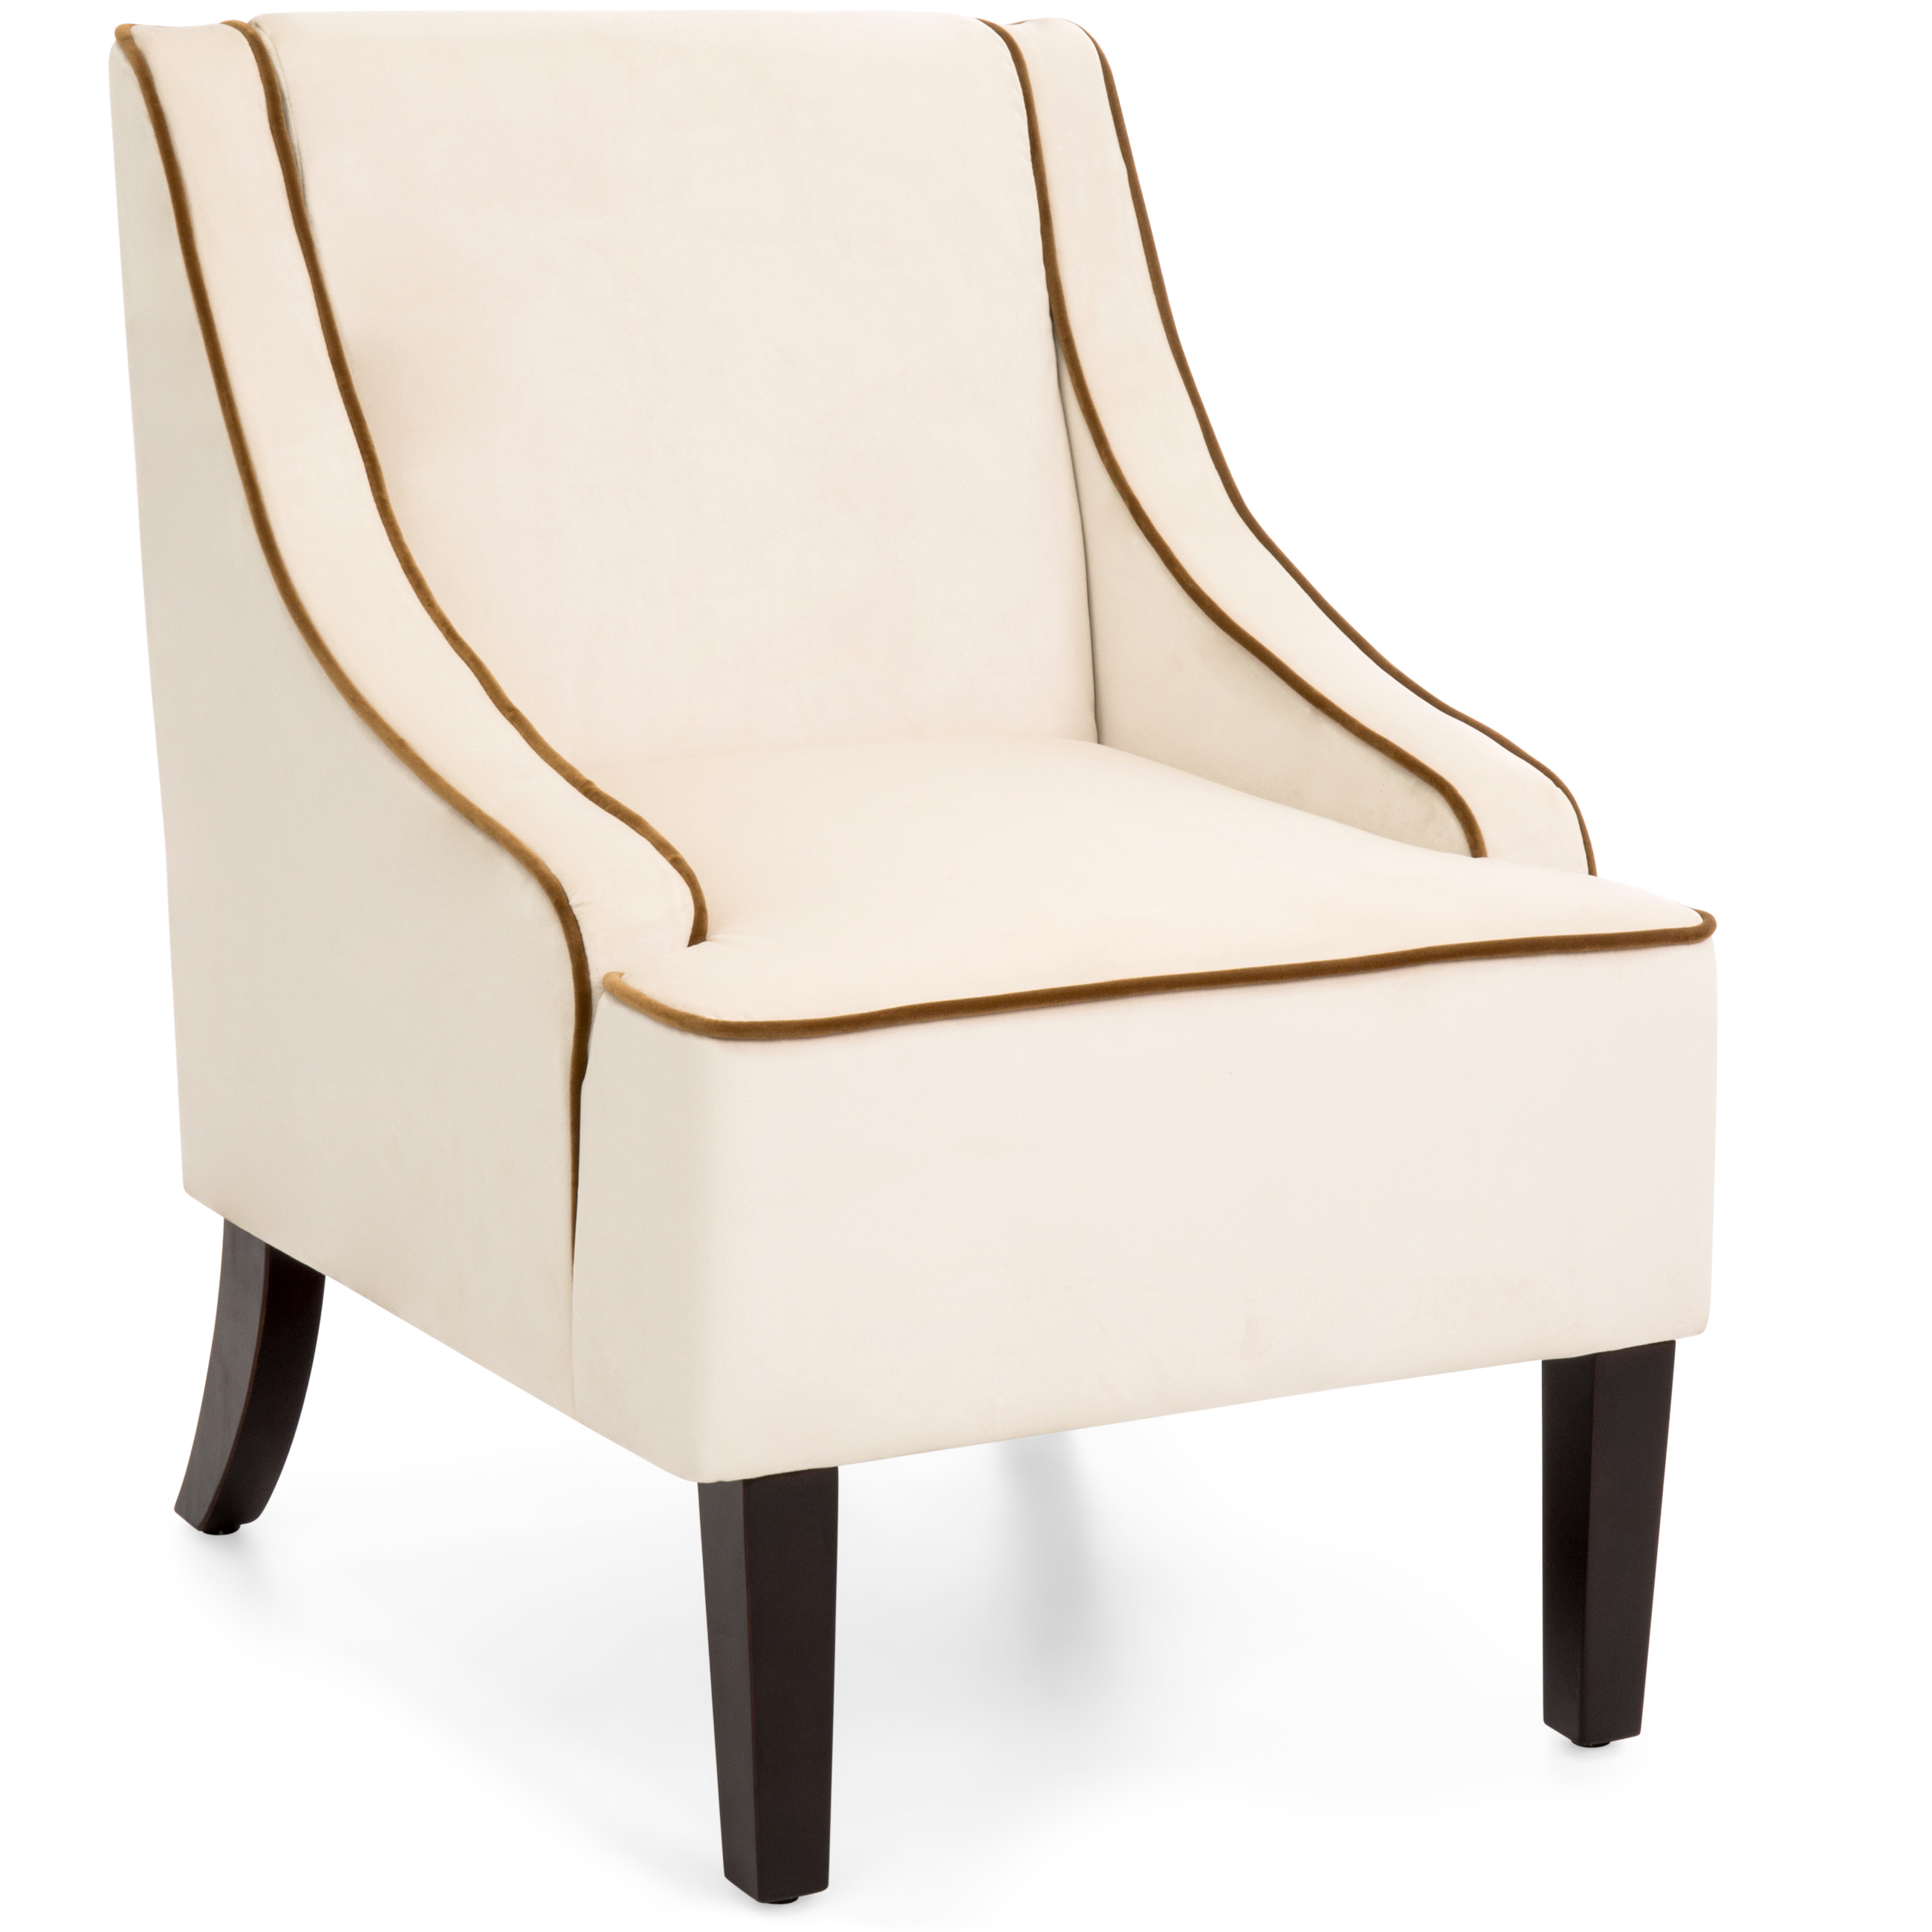 Best Choice Products Microfiber Accent Chair w/ Tapered Wood Legs (Beige)